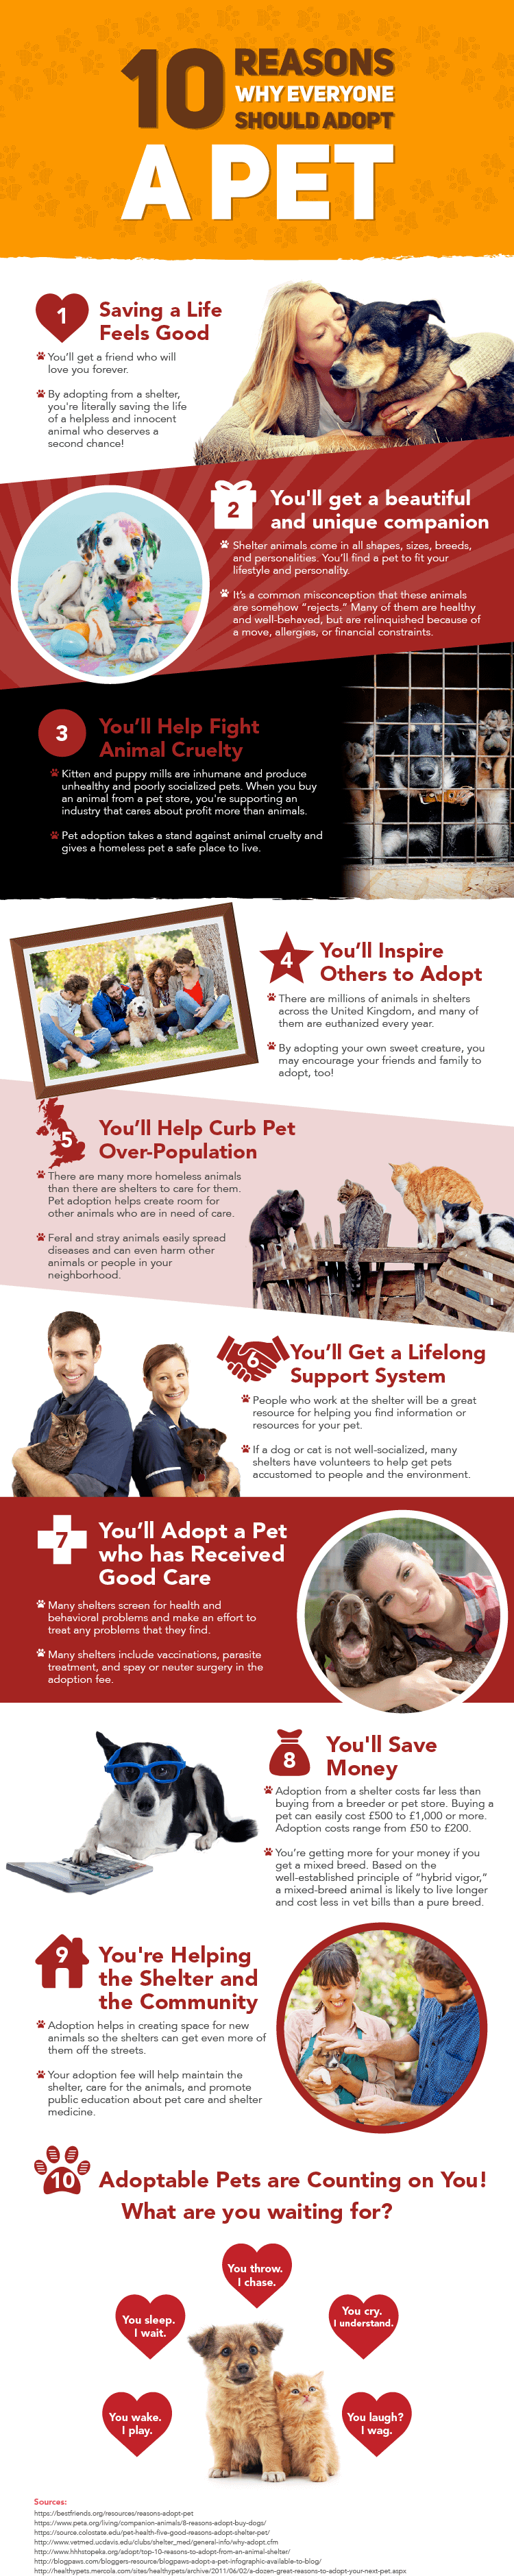 Infographic of ten reasons why everyone should adopt a pet